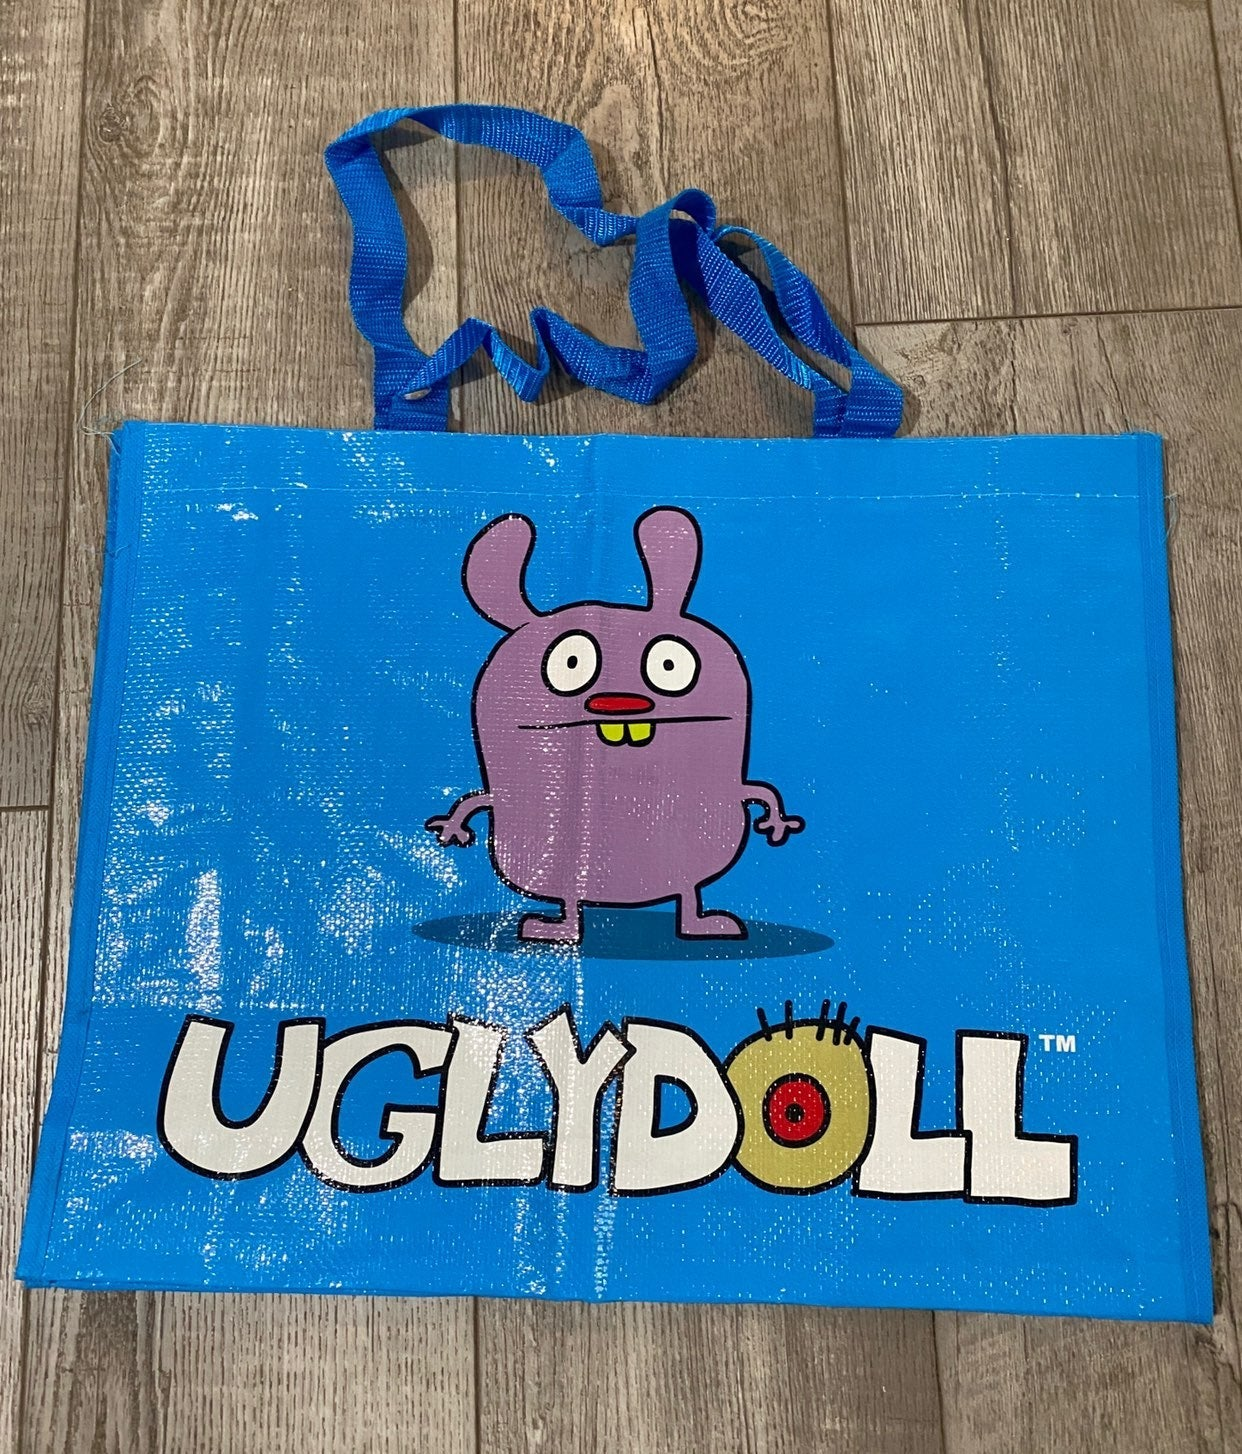 Blue Uglydoll Tote bag with Trunko